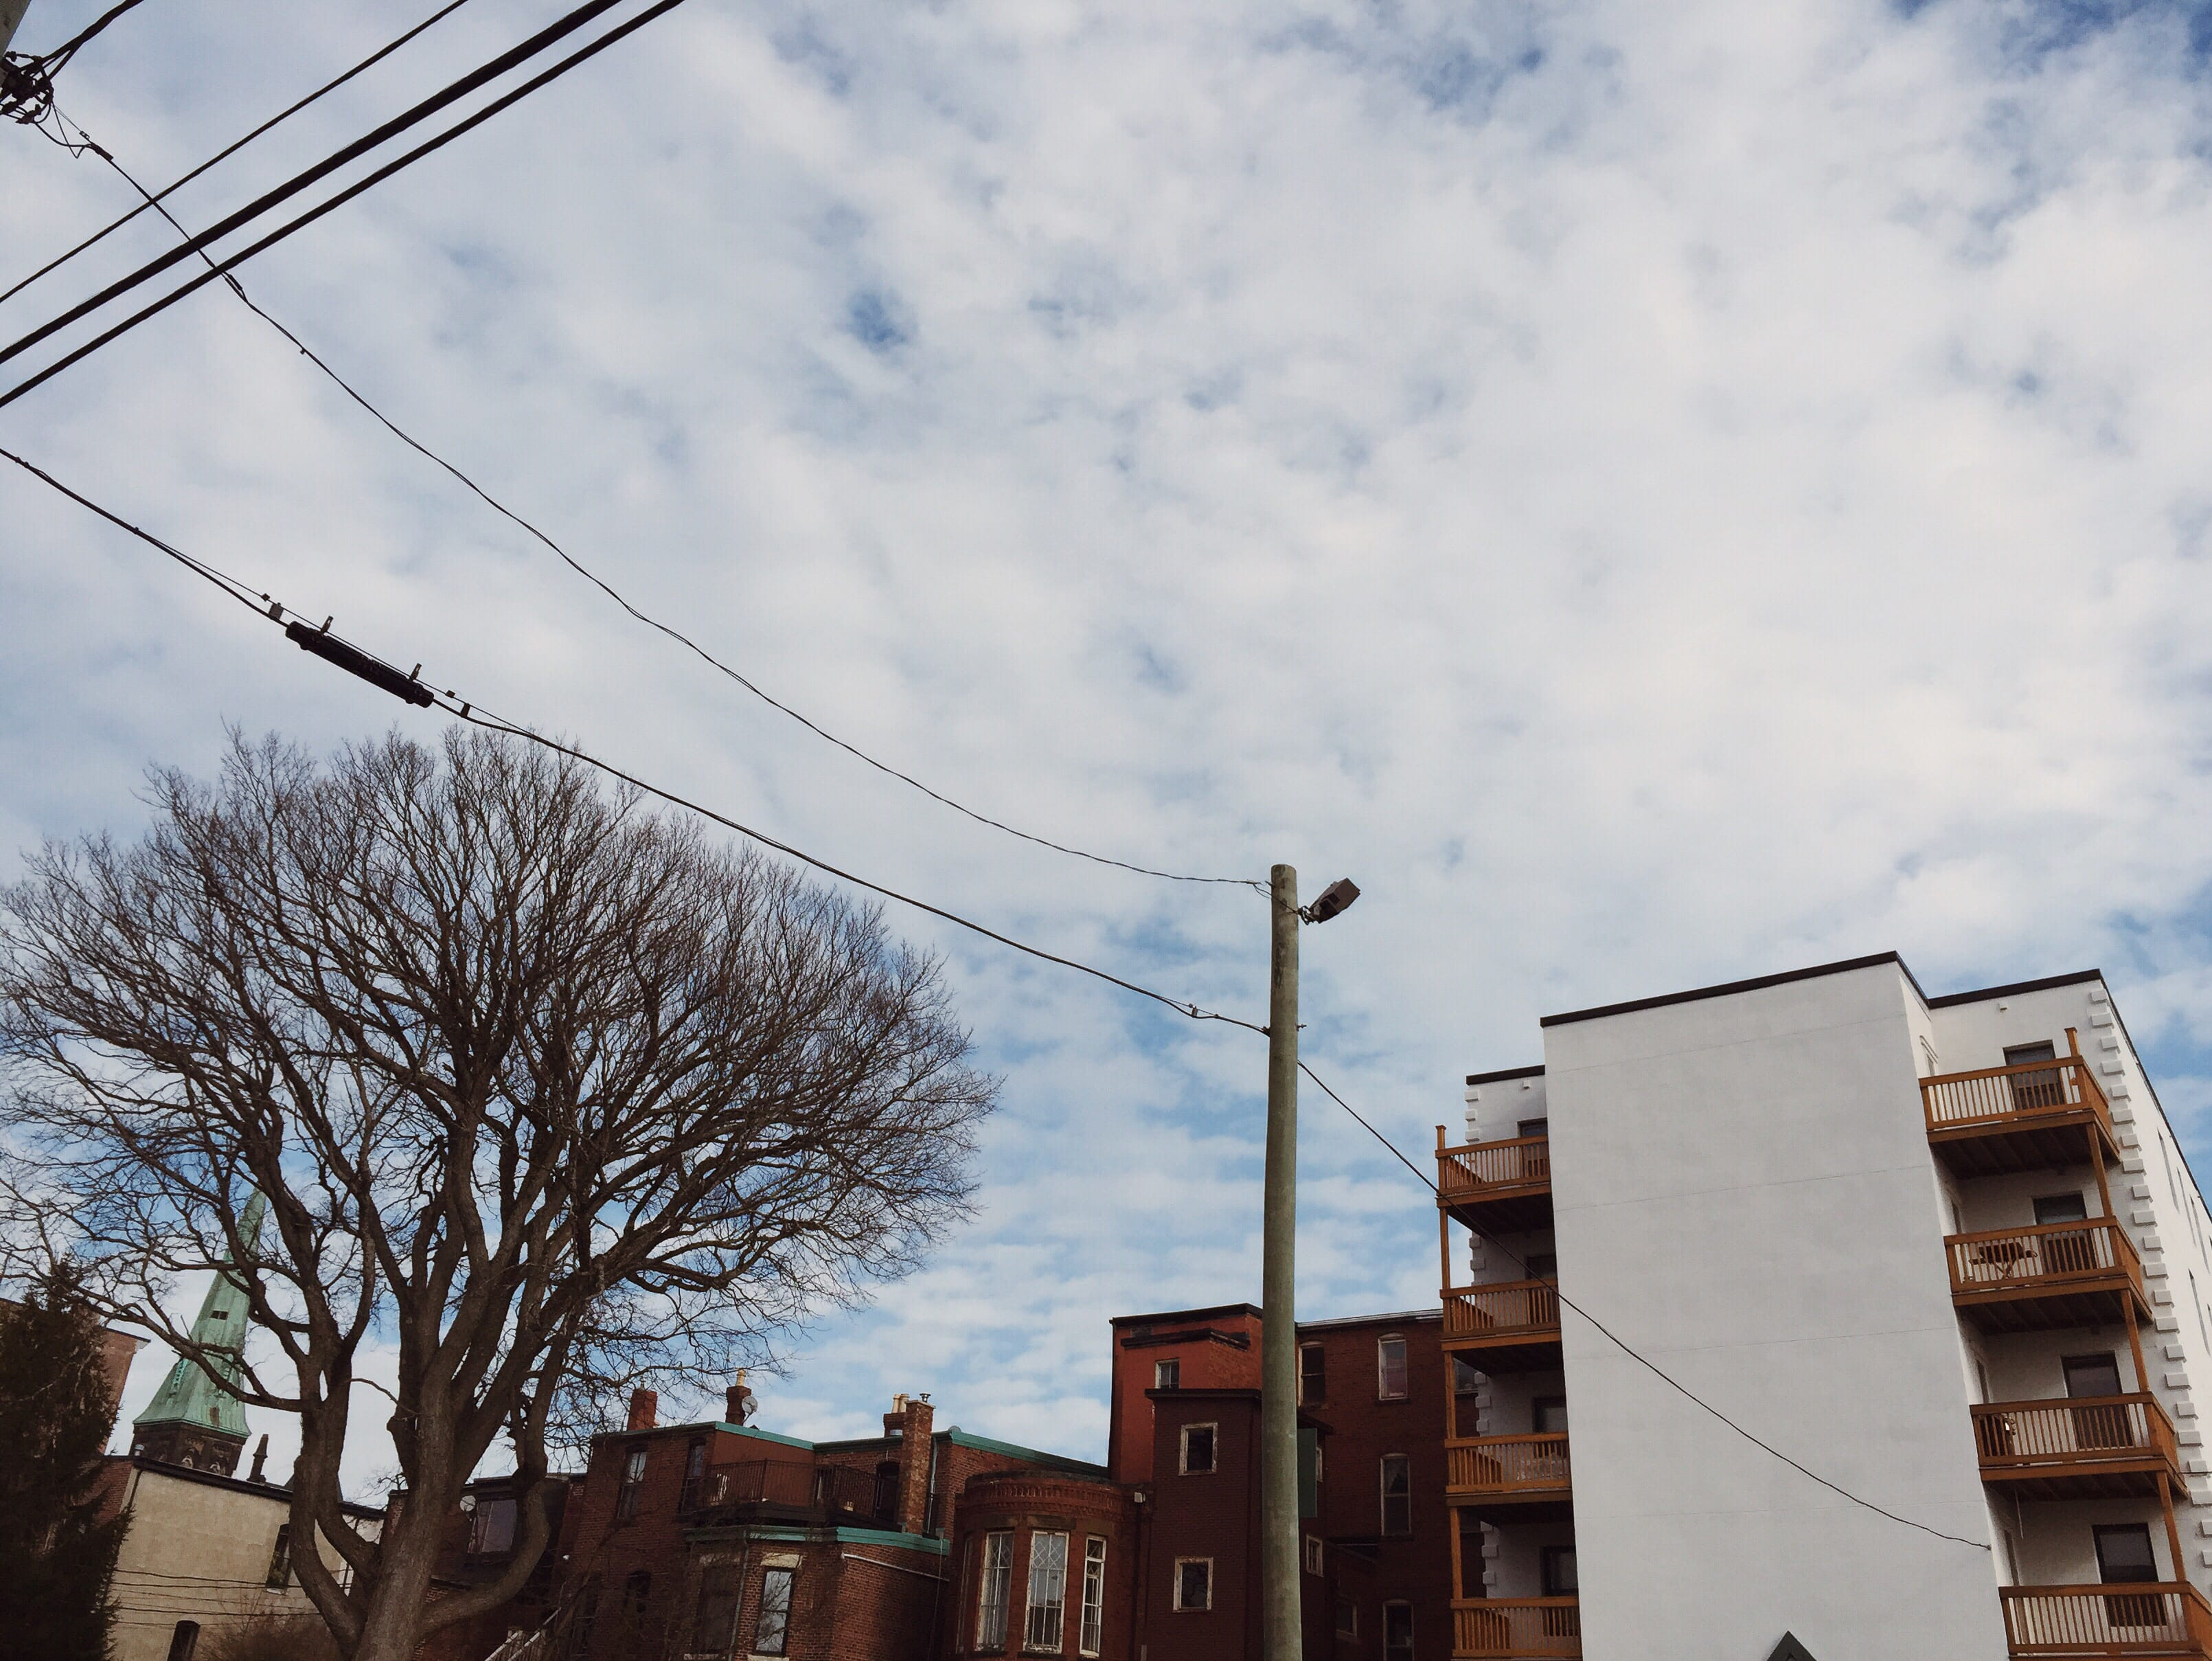 A photograph depicting Canterbury Street Power Lines